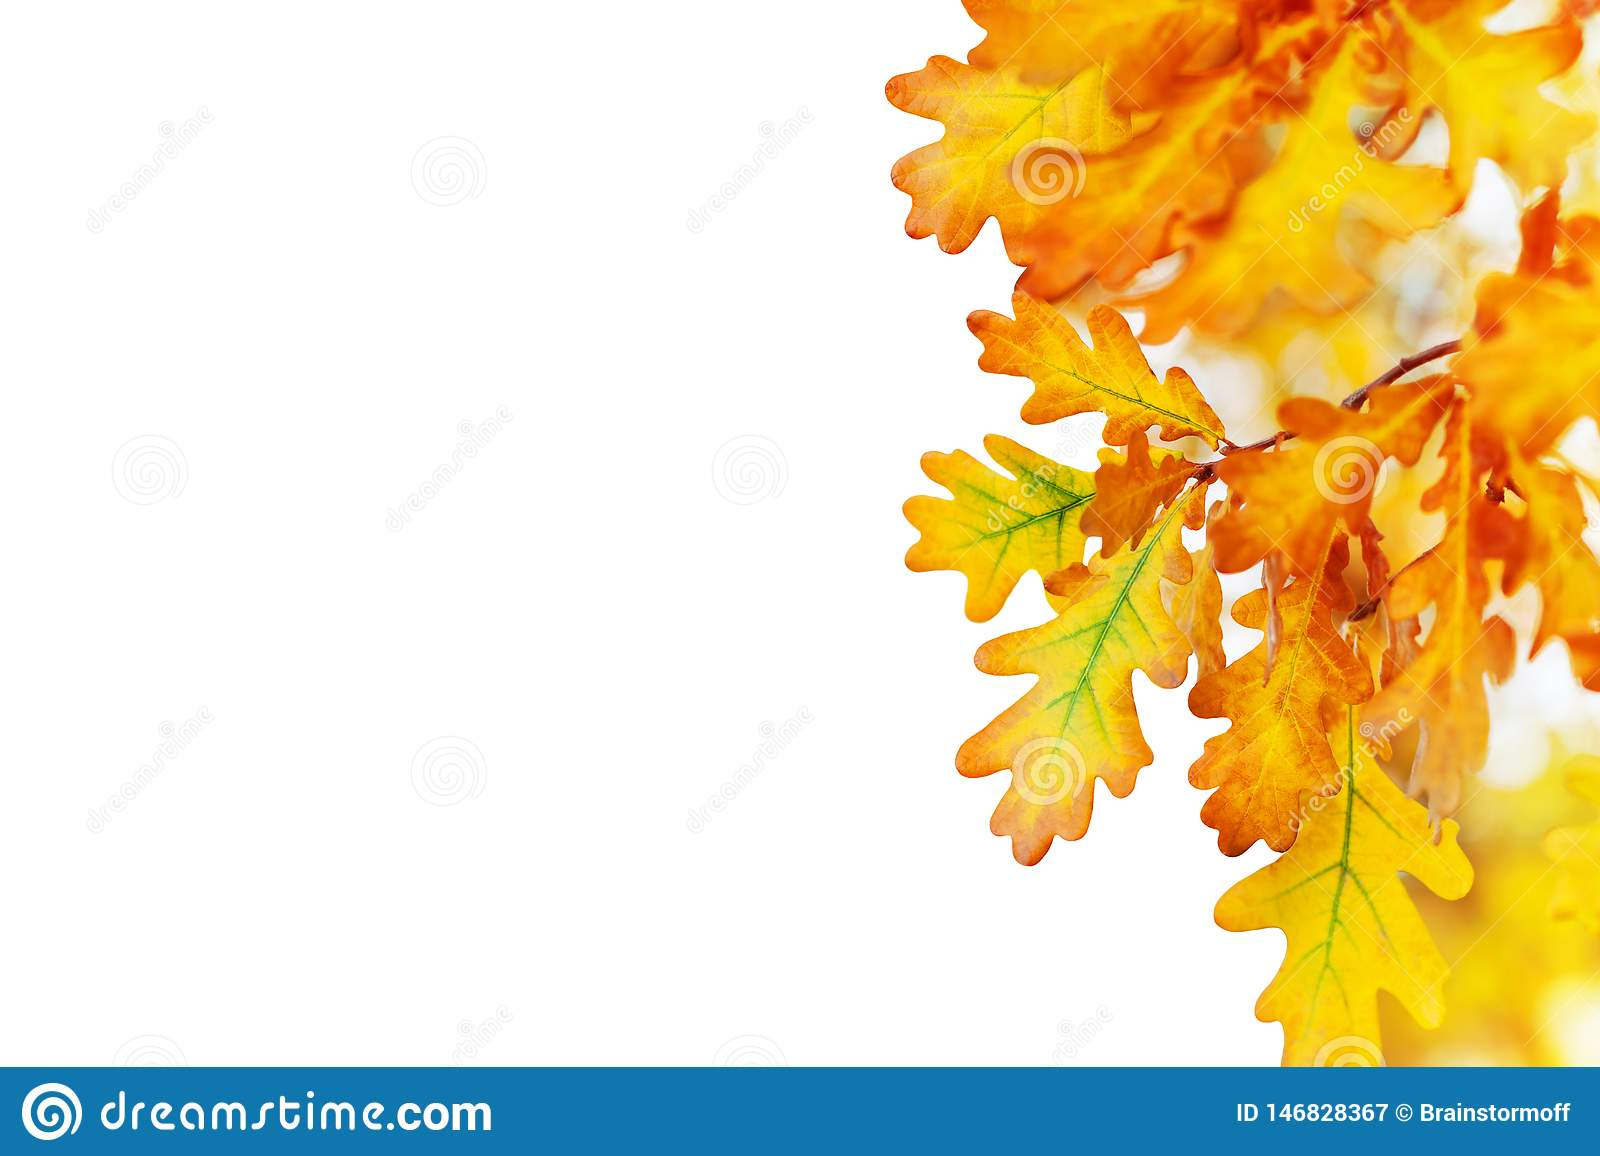 Yellow oak leaves on white background isolated close up, autumn golden foliage decorative border, fall oak tree branch frame